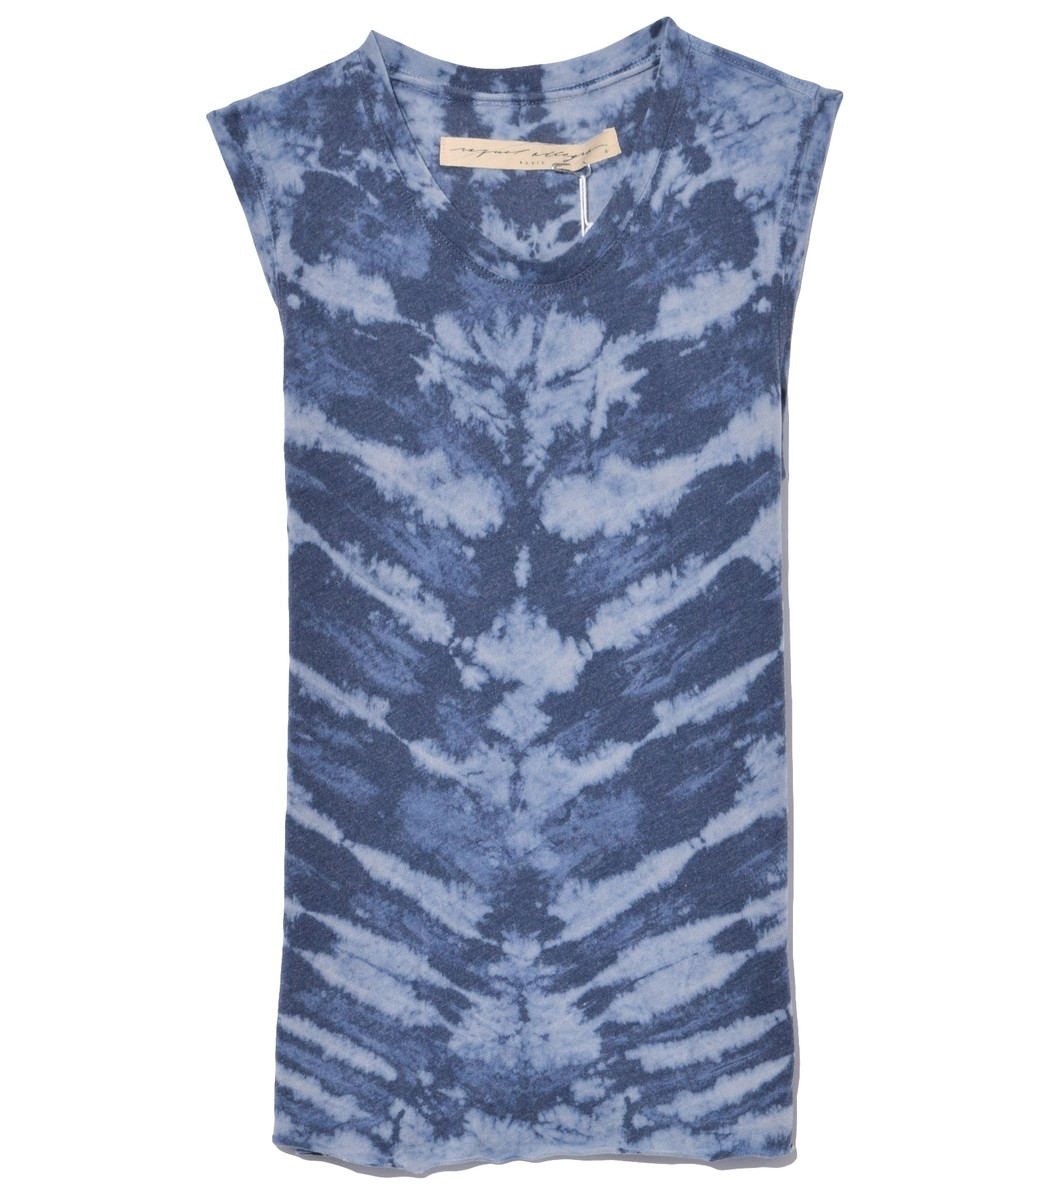 Raquel Allegra Tops Muscle Tank in Water Tie Dye